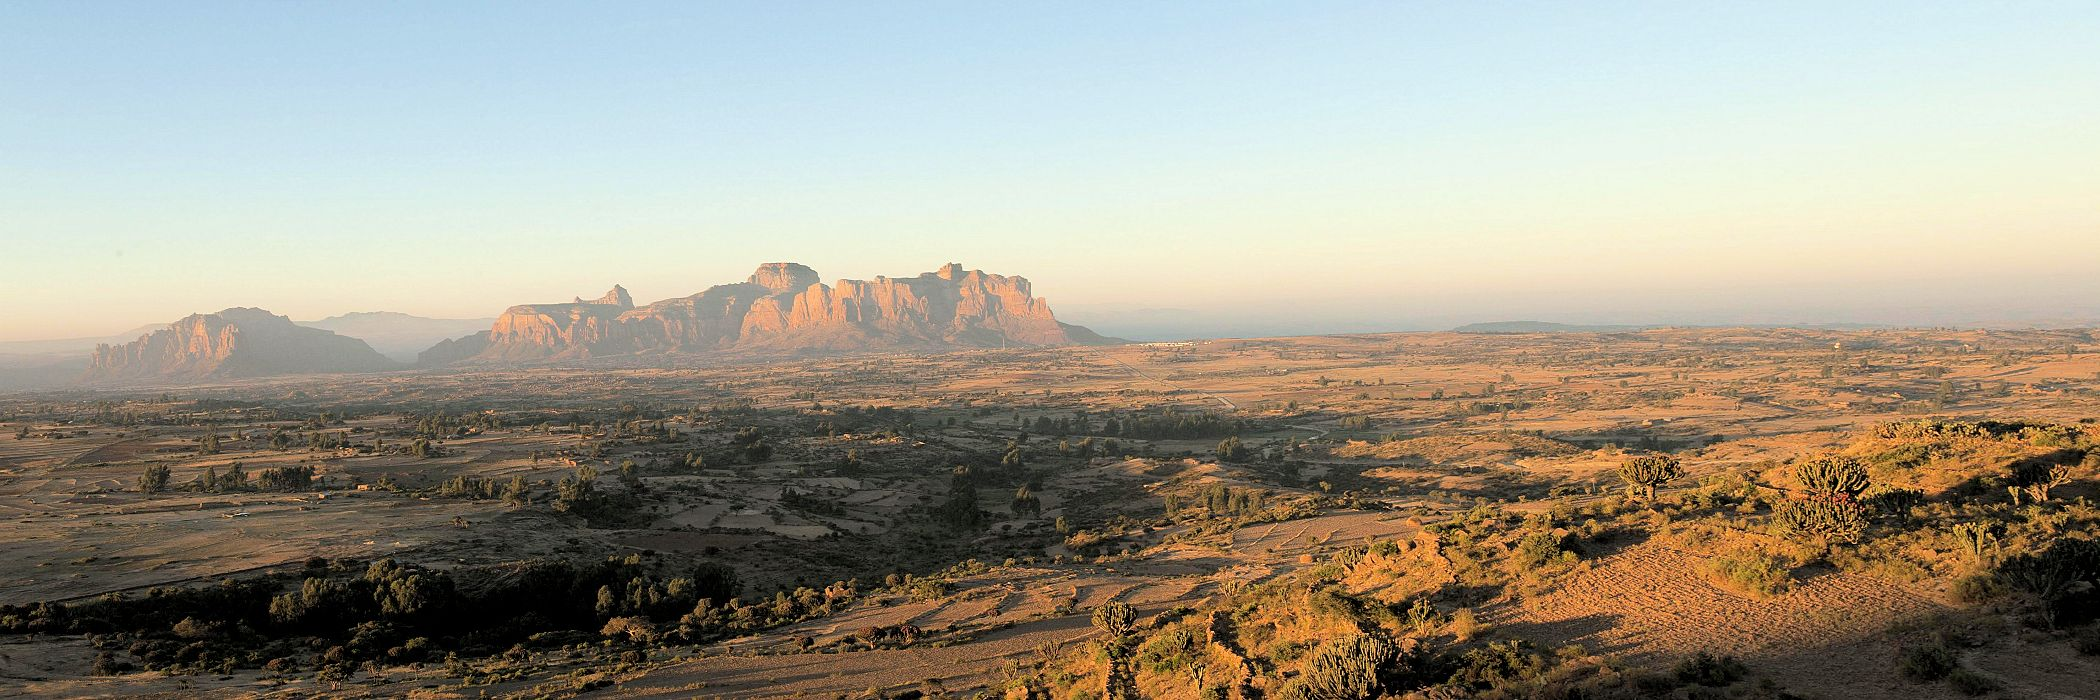 Gheralta mountain range in Ethiopia